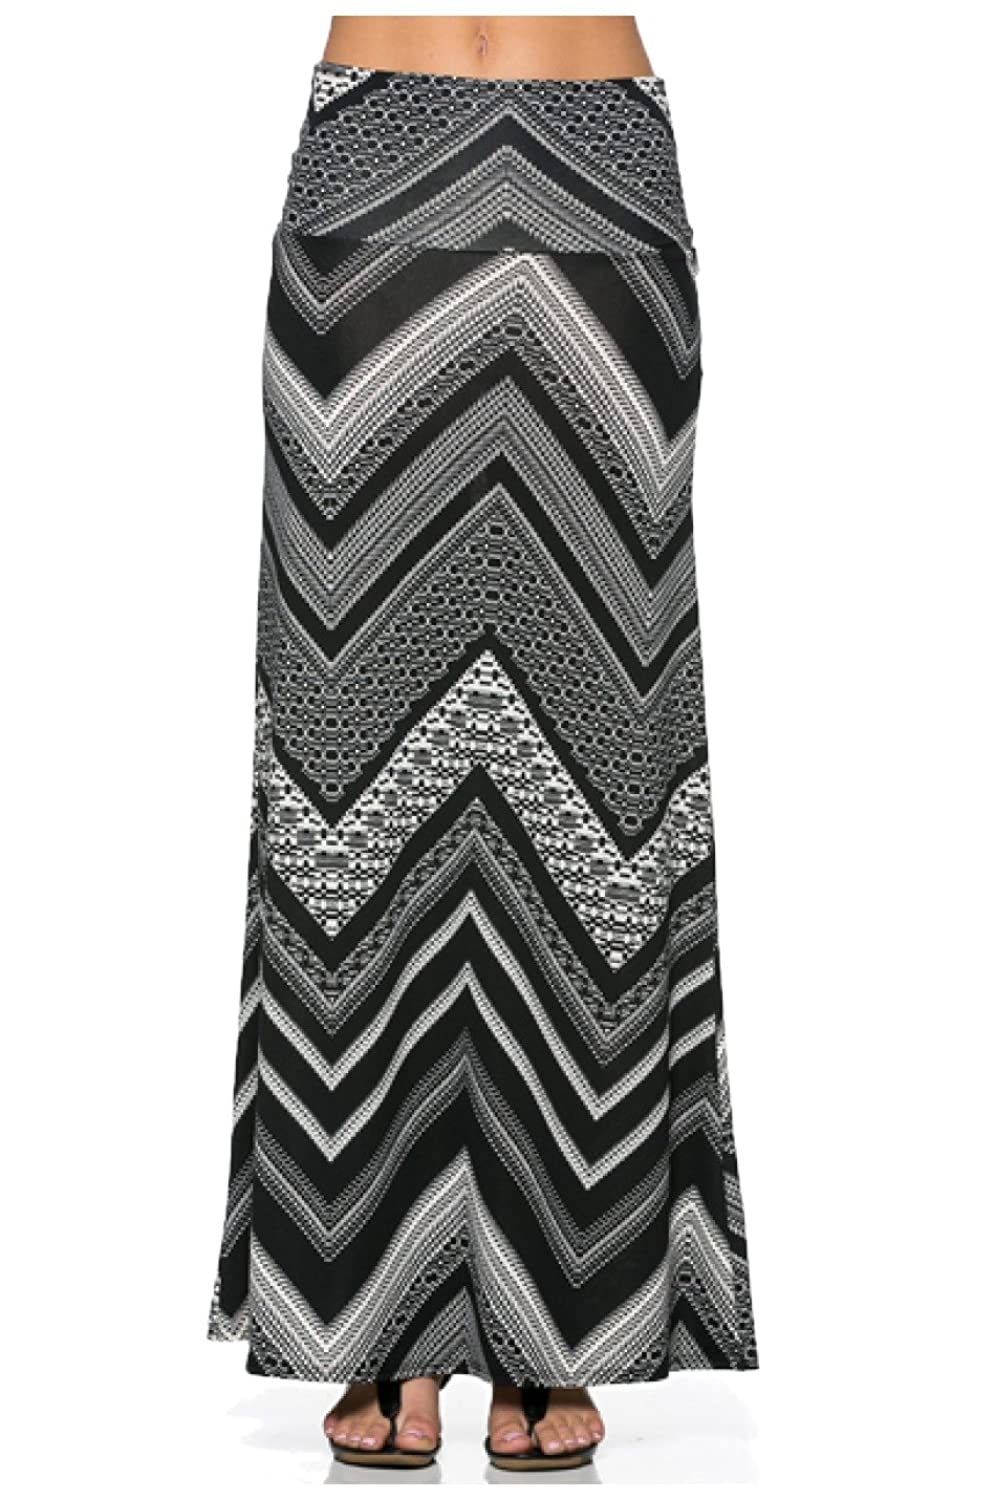 2LUV Women's Solid & Printed Floor Length Maxi Skirt